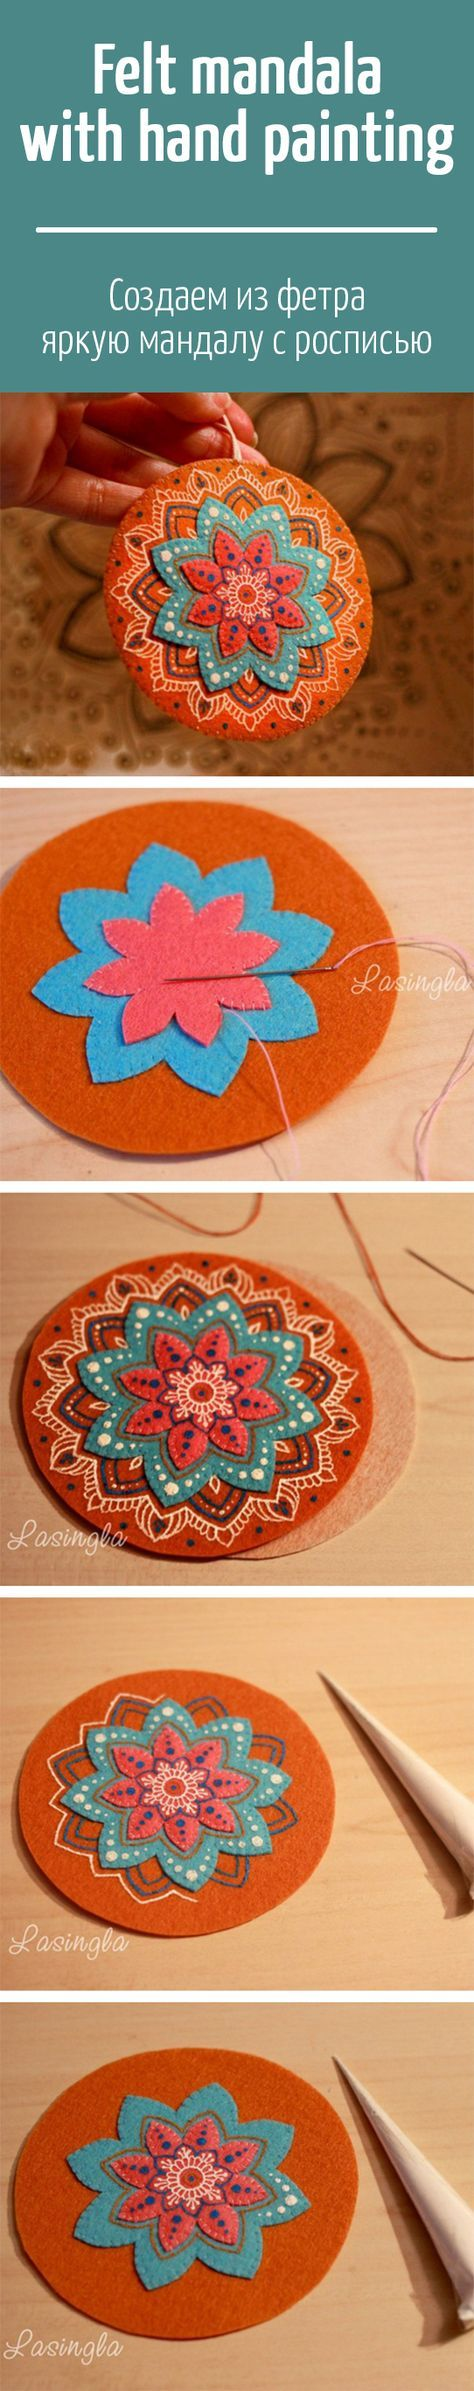 Felt mandala with hand painting: pattern and tutorial in Russian with many photos. Google Translate works great! She did the painting with tube acrylic paints in small cones like you would use for frosting decorations.